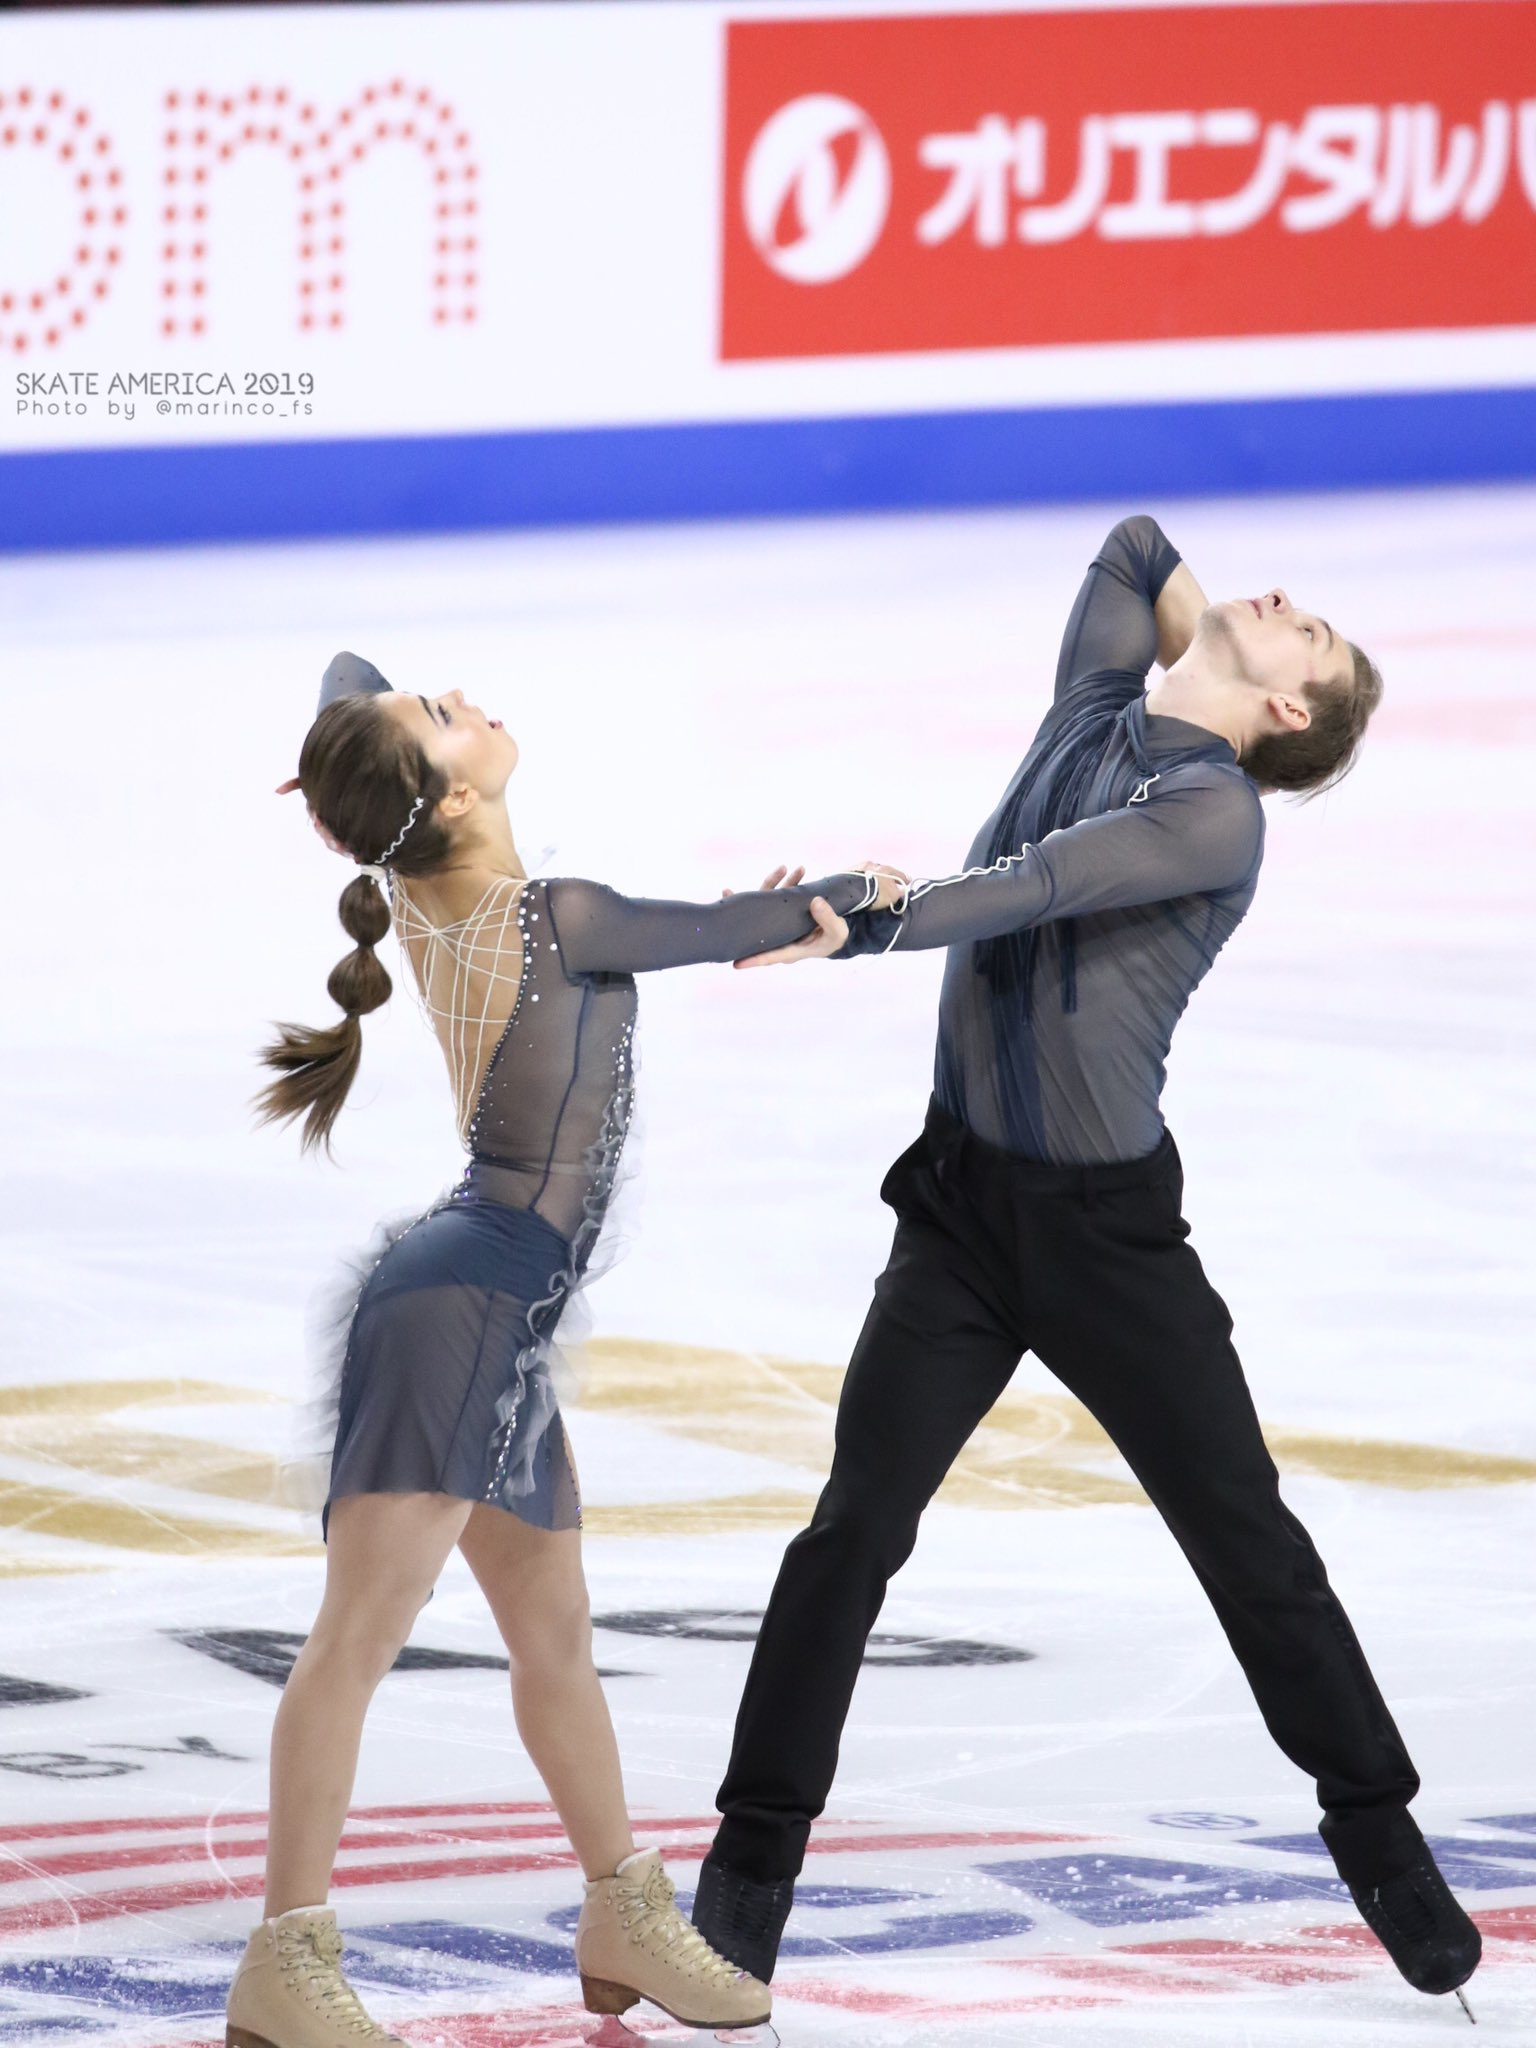 GP - 1 этап. Skate America Las Vegas, NV / USA October 18-20, 2019   - Страница 5 EHJQGVIU4AE5wAG?format=jpg&name=4096x4096